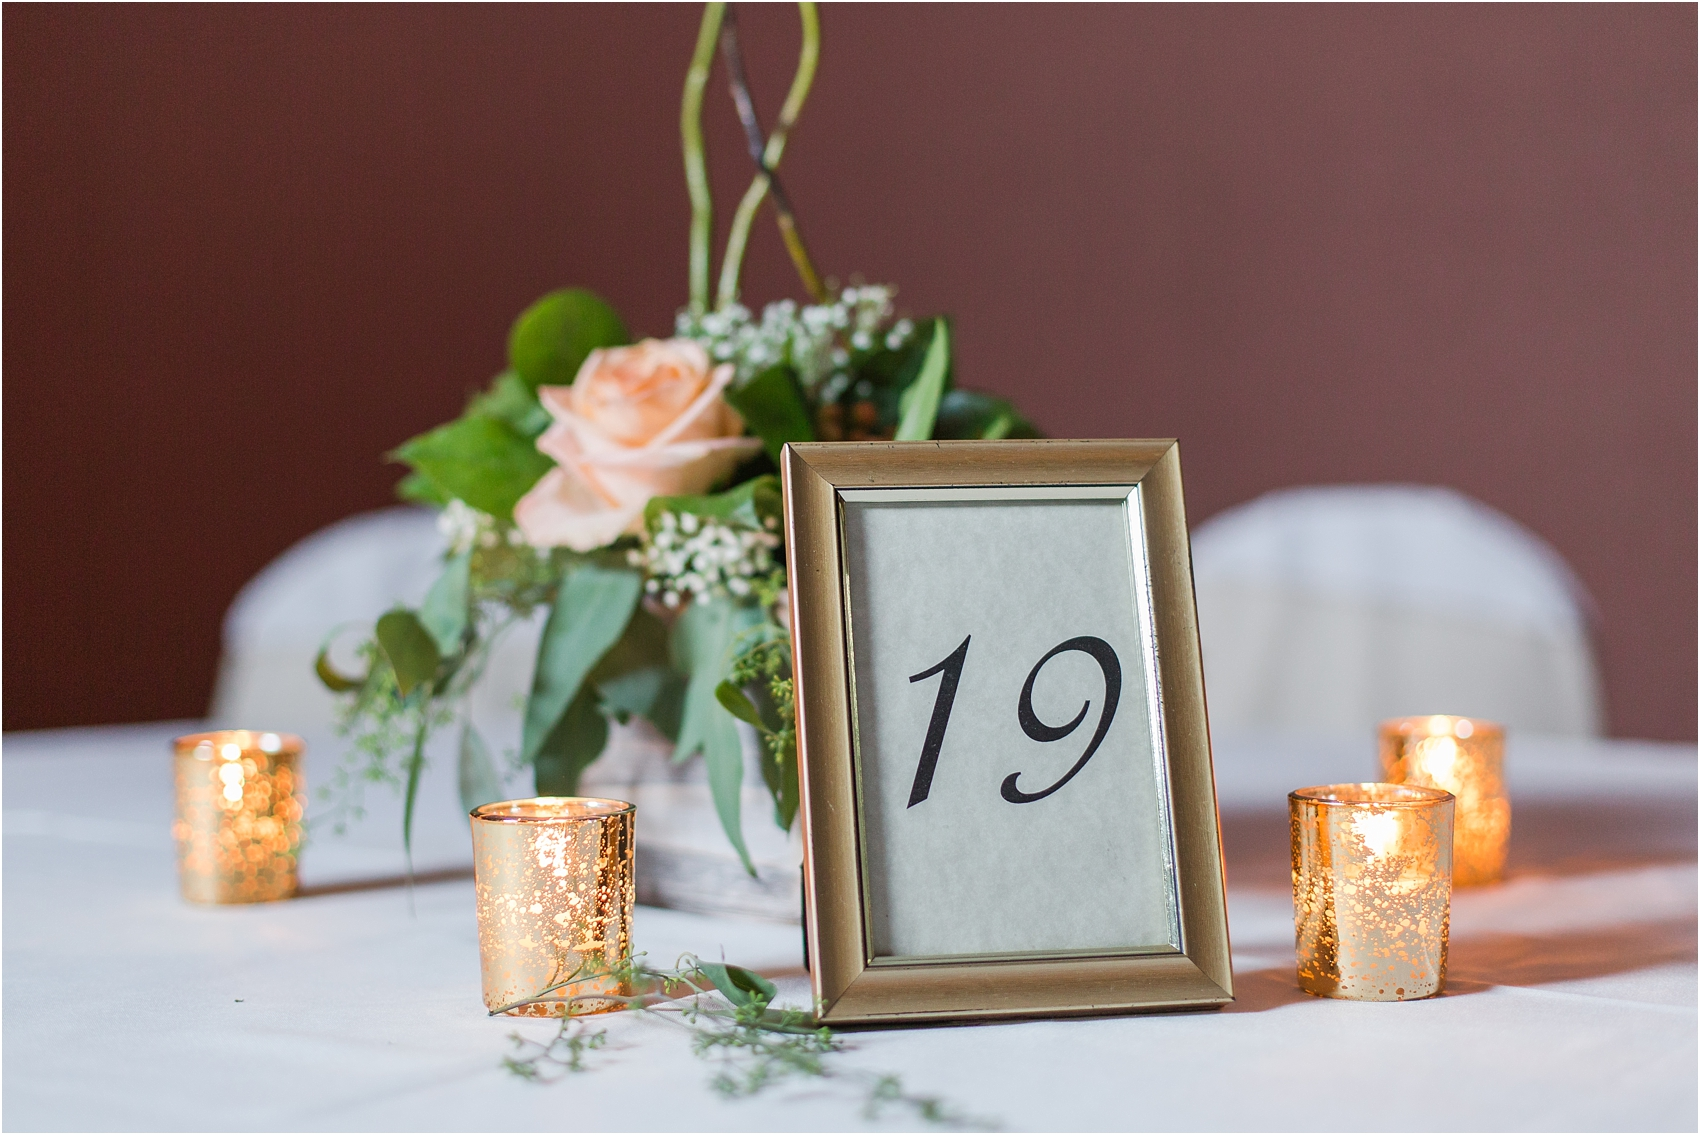 lord-of-the-rings-inspired-wedding-photos-at-crystal-gardens-in-howell-mi-by-courtney-carolyn-photography_0069.jpg